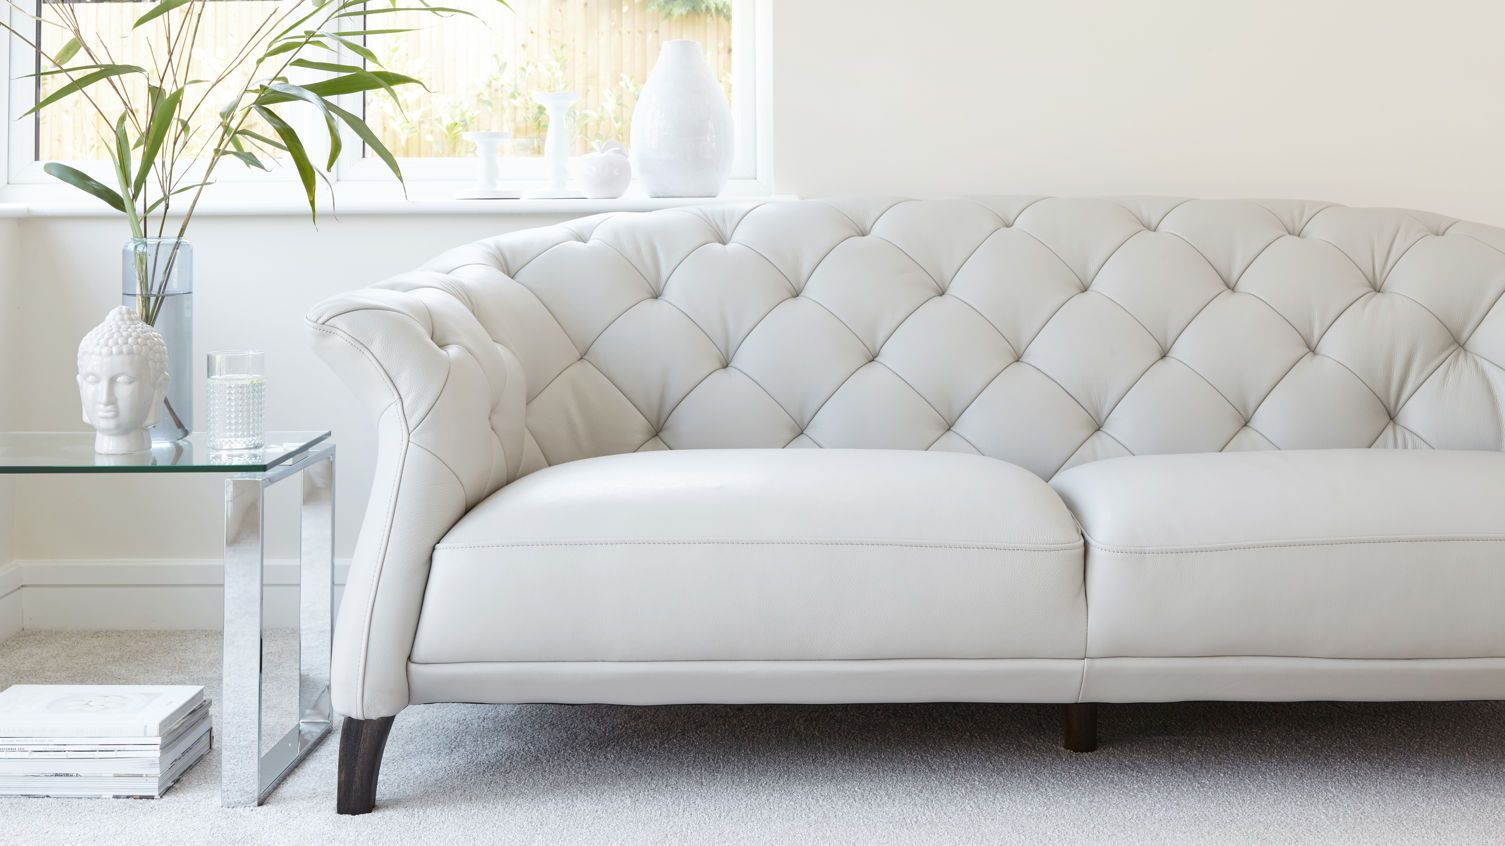 Luxe Modern 2 To 3 Seater Leather Chesterfield Sofa Best within measurements 1505 X 846